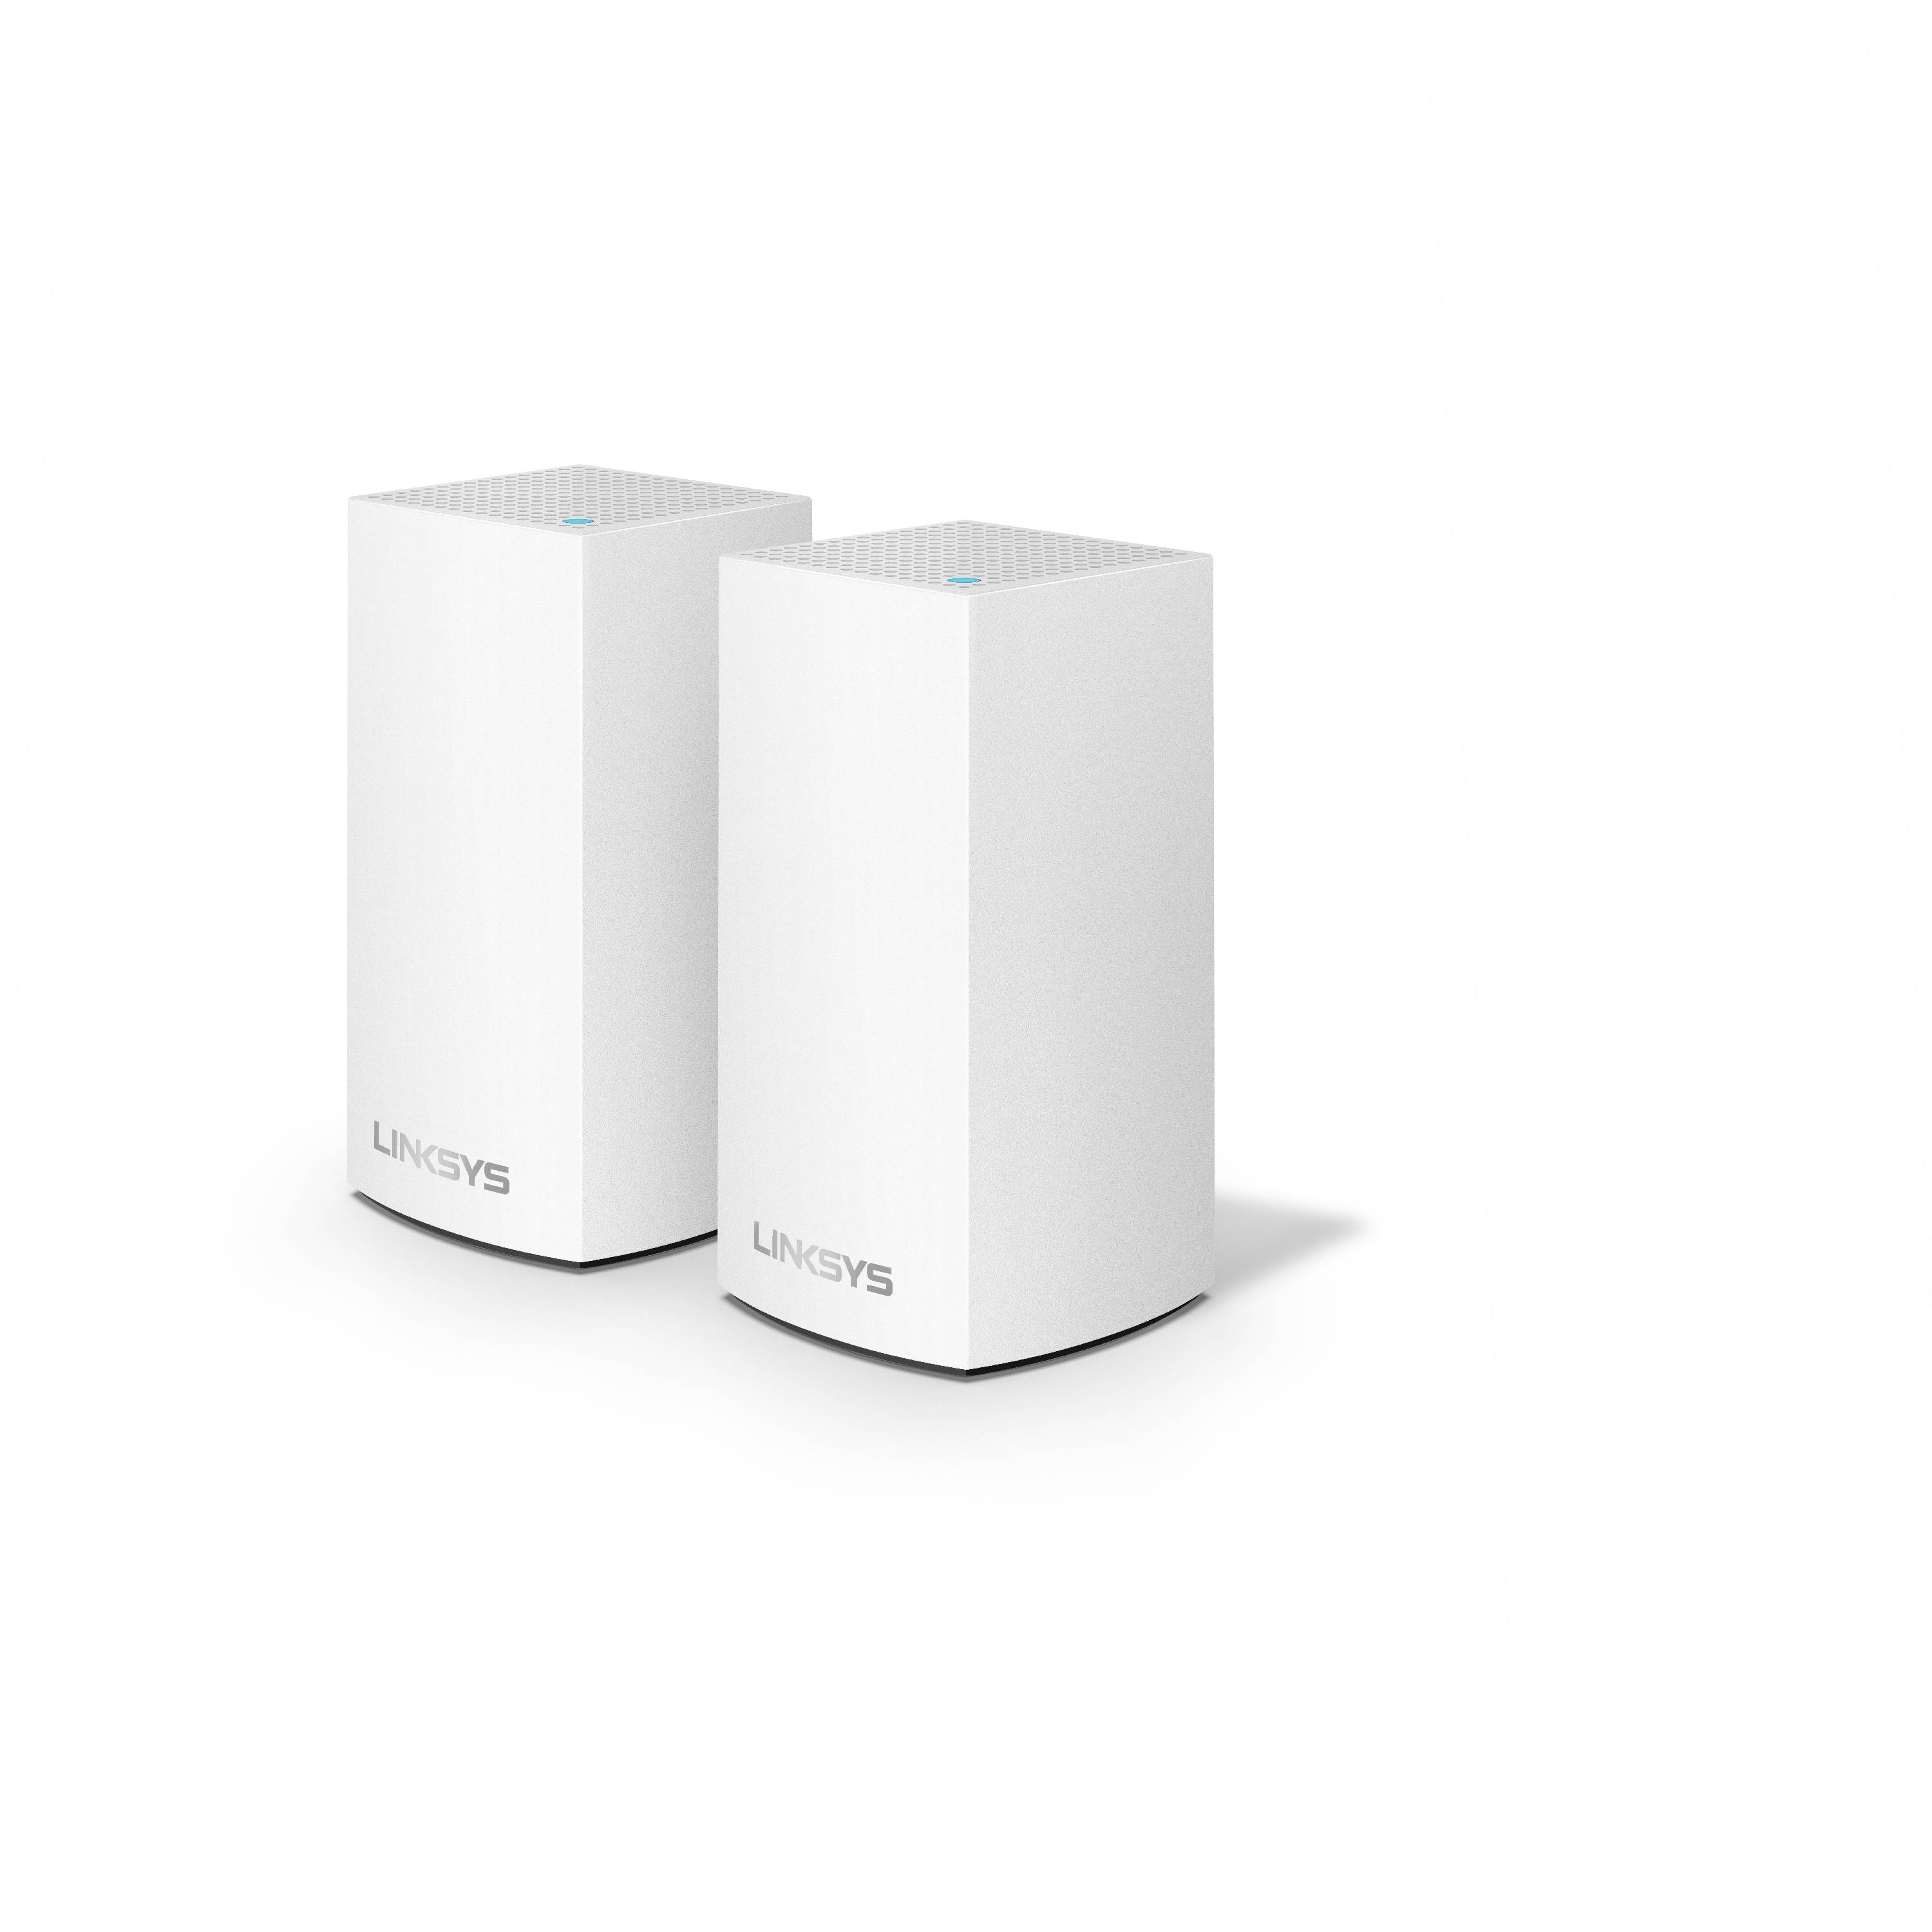 Linksys Velop AC2400 Whole Home WiFi Intelligent Mesh System, 2 Pack White, Easy Setup, Maximize WiFi Range & Speed for all your devices, Walmart Exclusive!